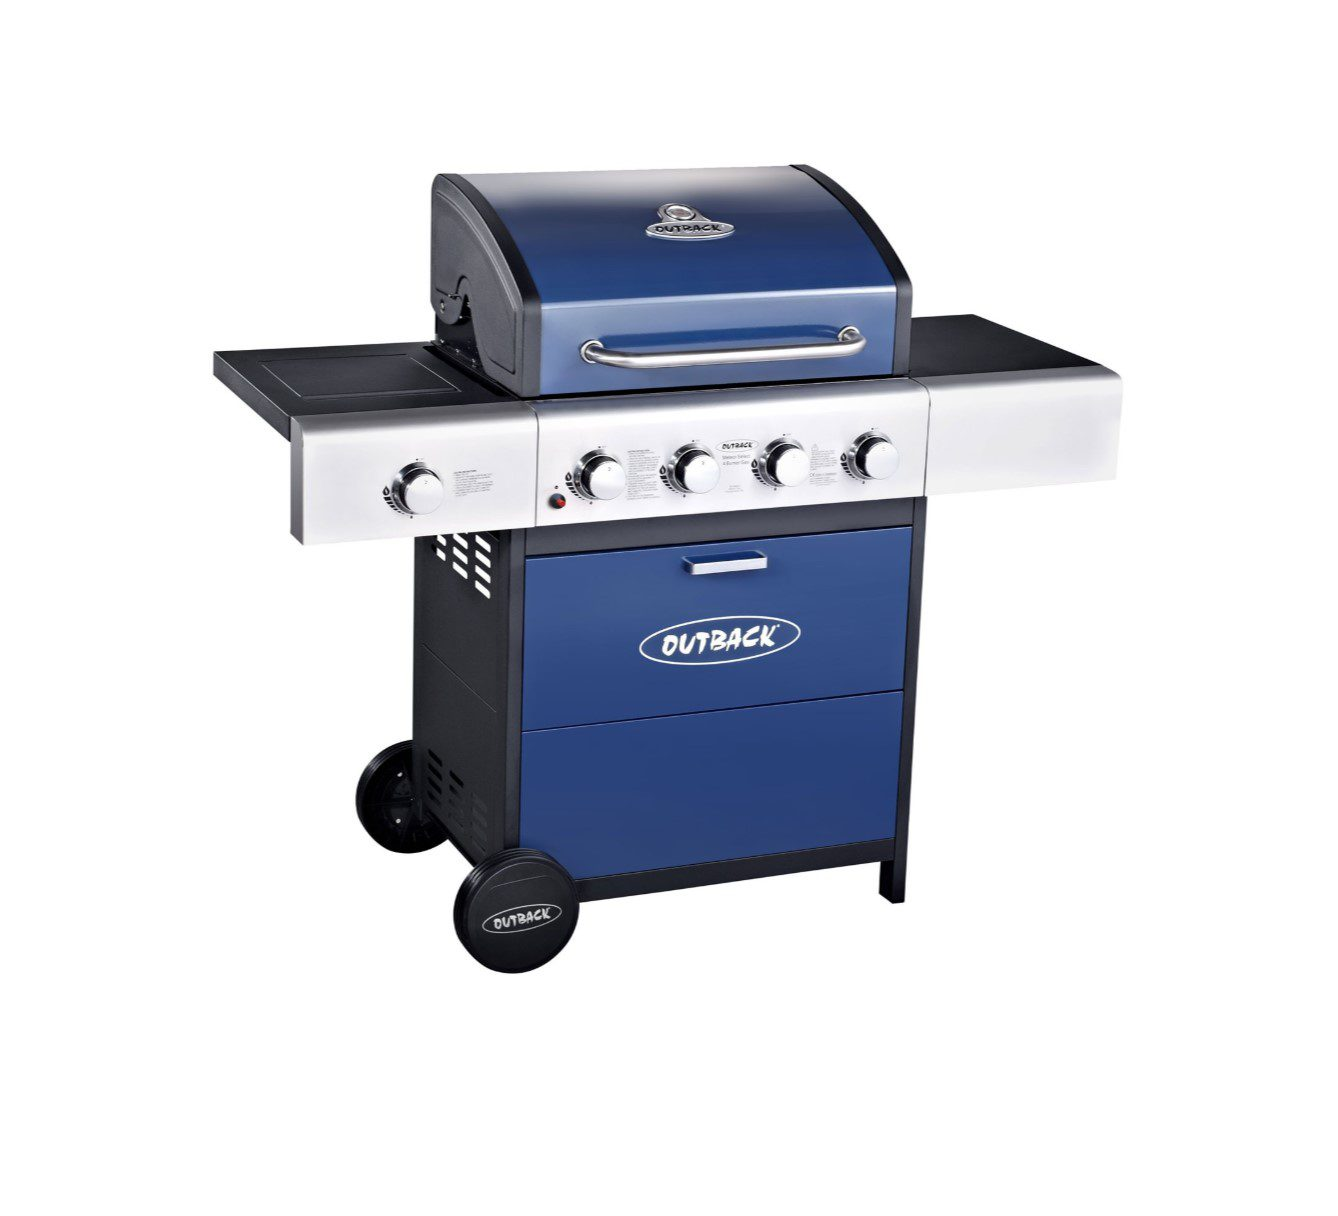 Outback Meteor 4 Burner Gas Hooded BBQ Blue 370699 2019 Model